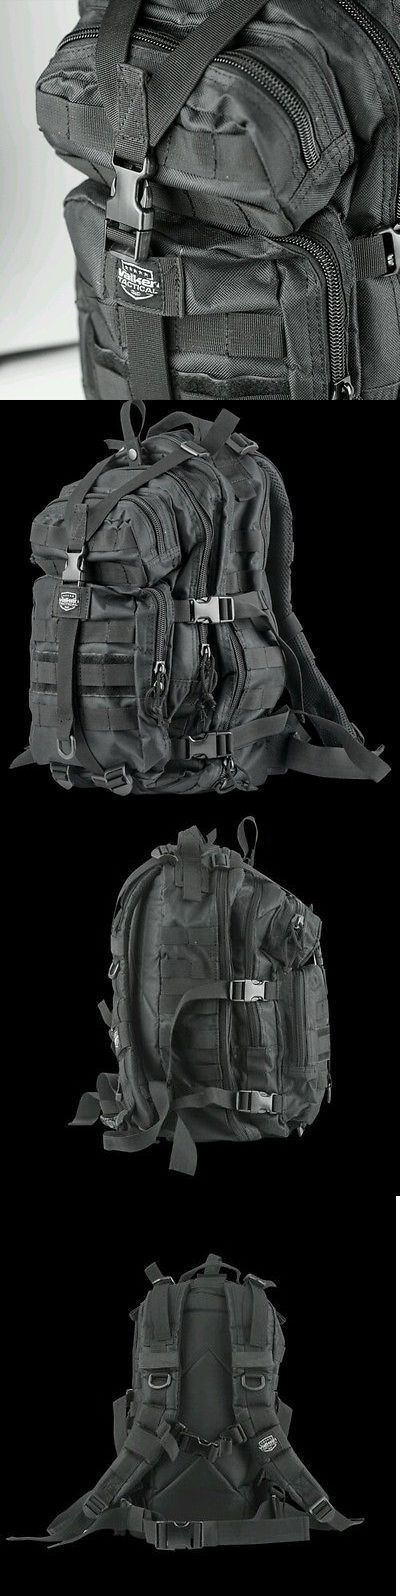 Equipment Bags and Cases 64672: New Valken Paintball Kilo Compact Tactical Backpack Gear Equipment Bag - Black -> BUY IT NOW ONLY: $32.99 on eBay!